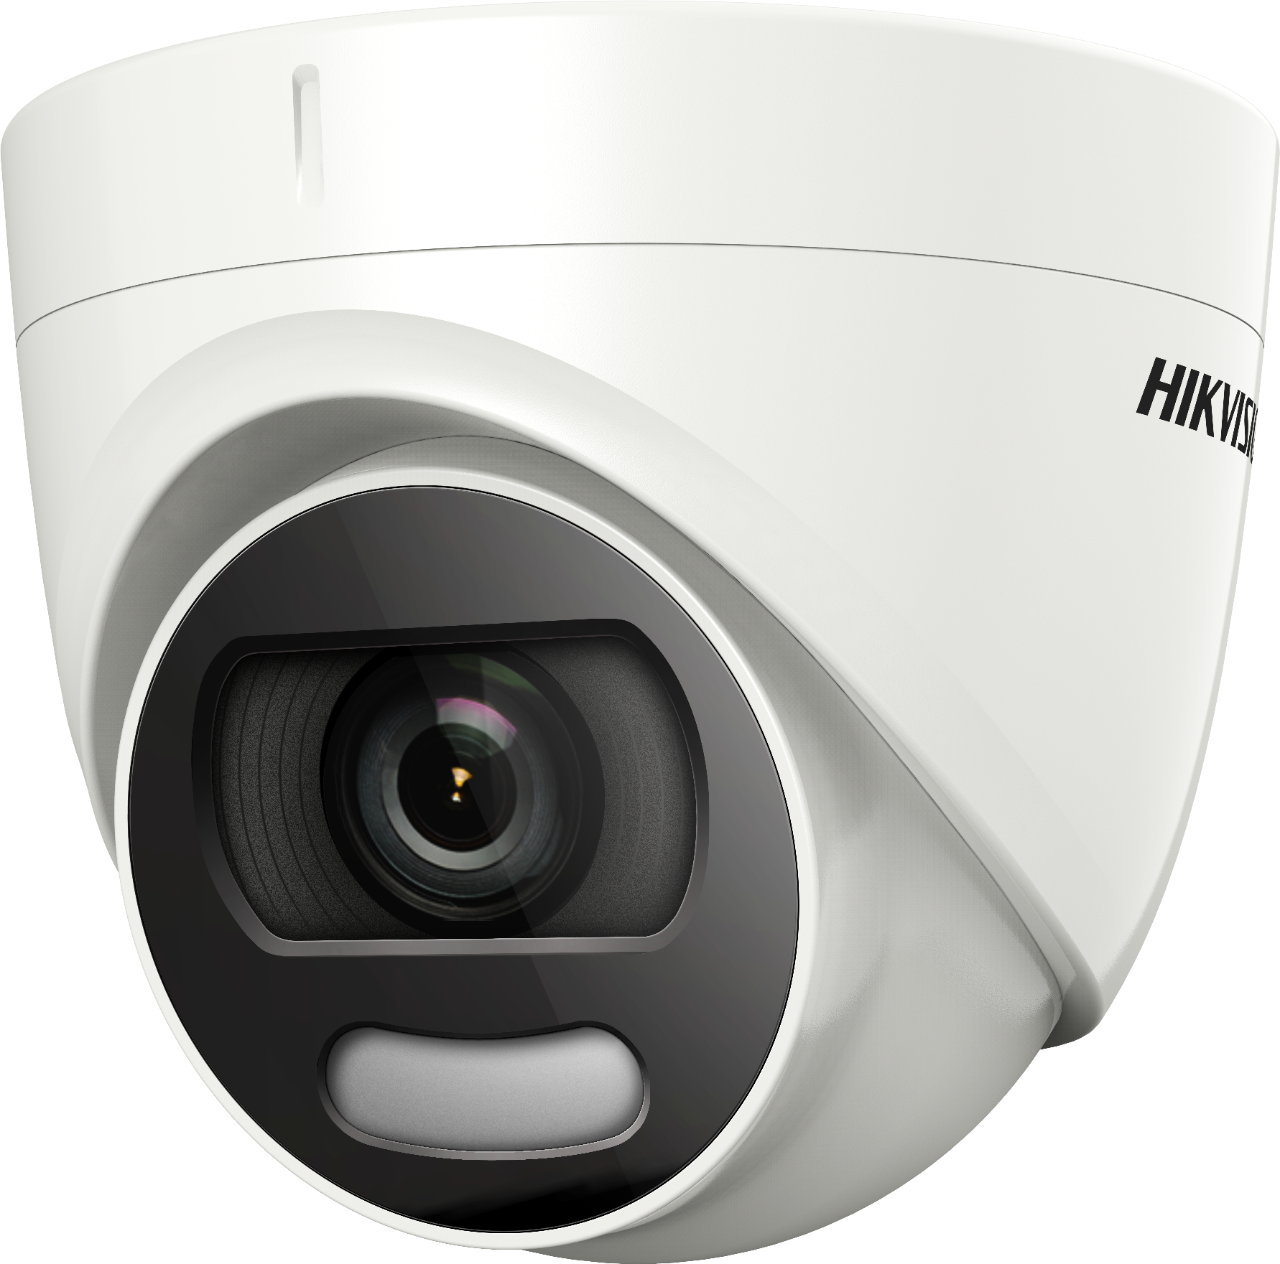 Turbo HD HDoC Eyeball / Turret camera For outdoor use Resolution: 5MP Lens: 2.8mm White light 20m IP67 Power supply: 12VDC ColorVu - 24/7 color, 4in1, Up the Coax (HIkVision-C) 130dB True WDR